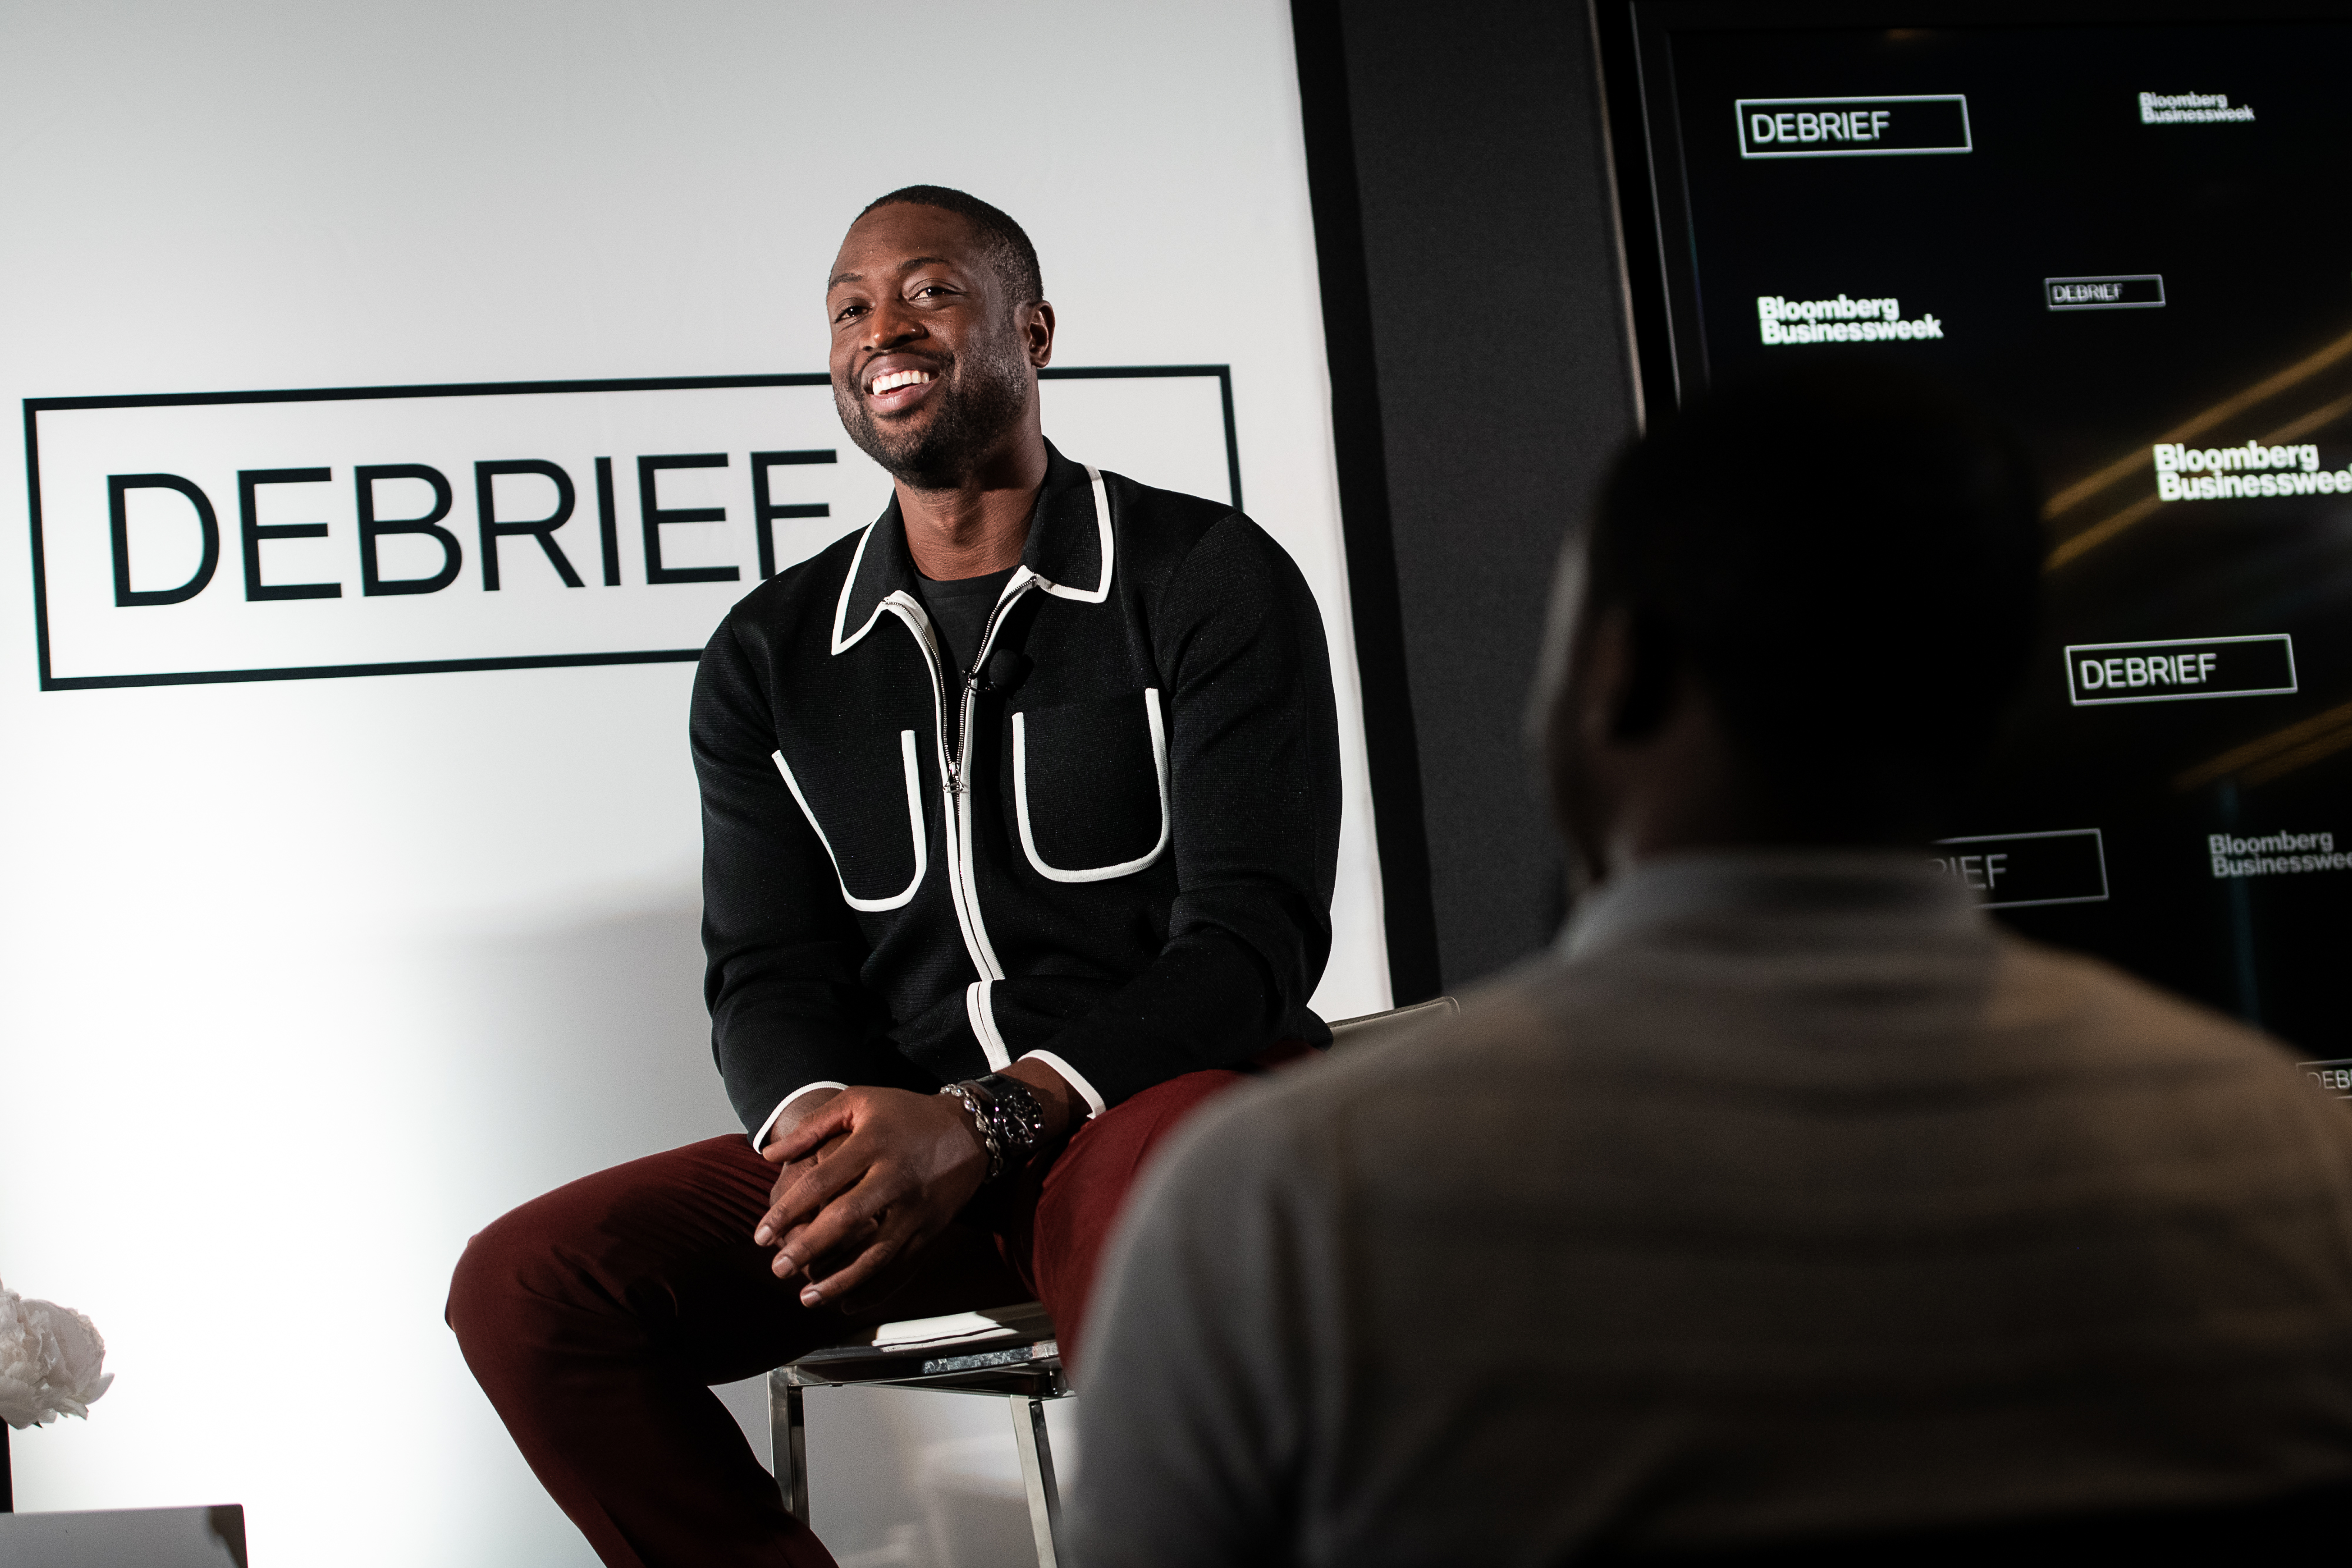 Dwyane Wade at the Bloomberg Debrief event.